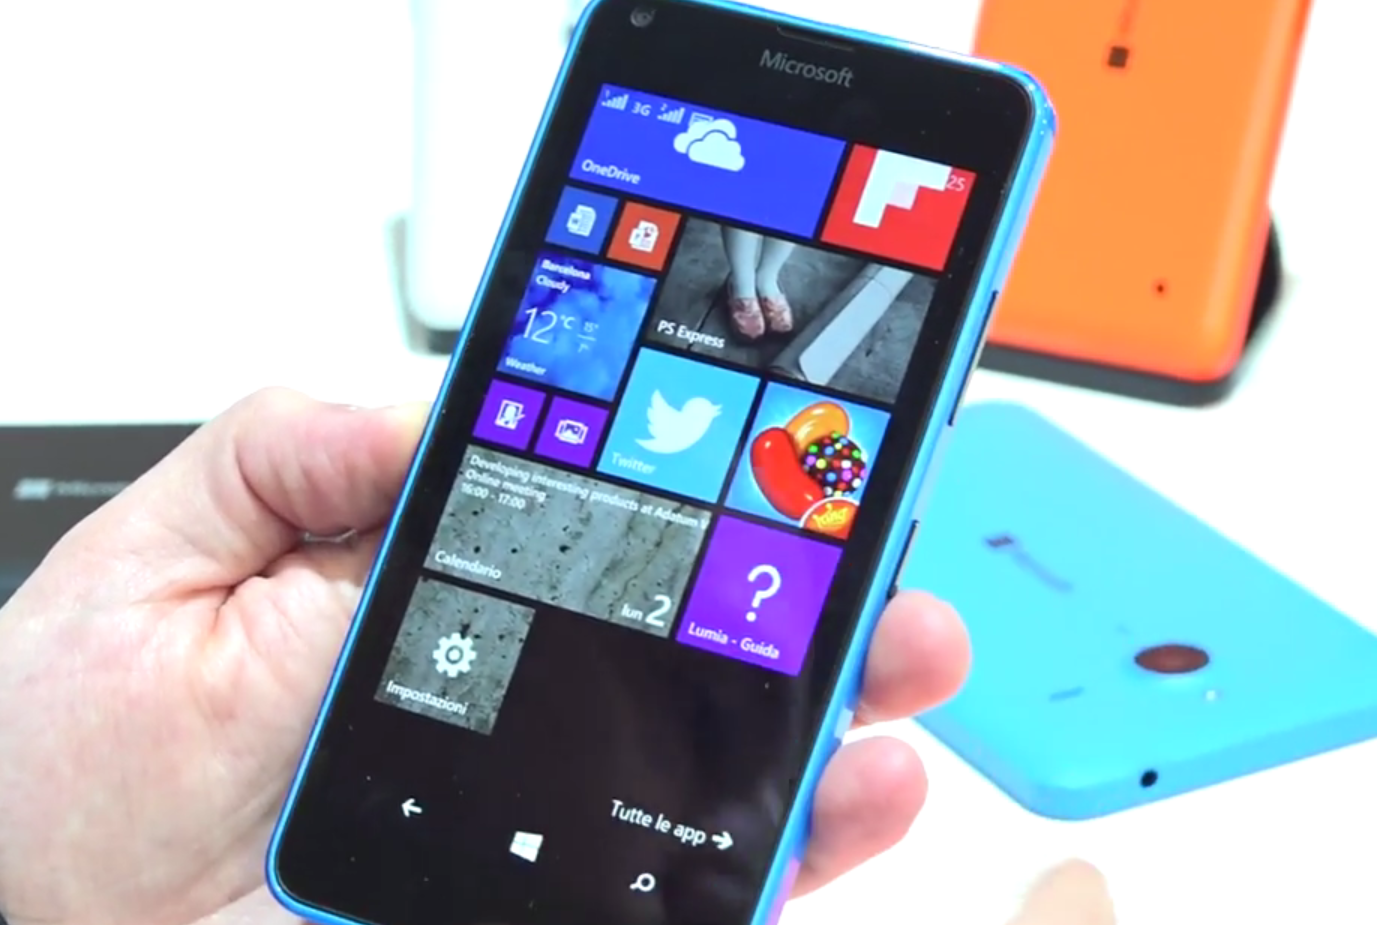 windows_phone_8.1_update2_app